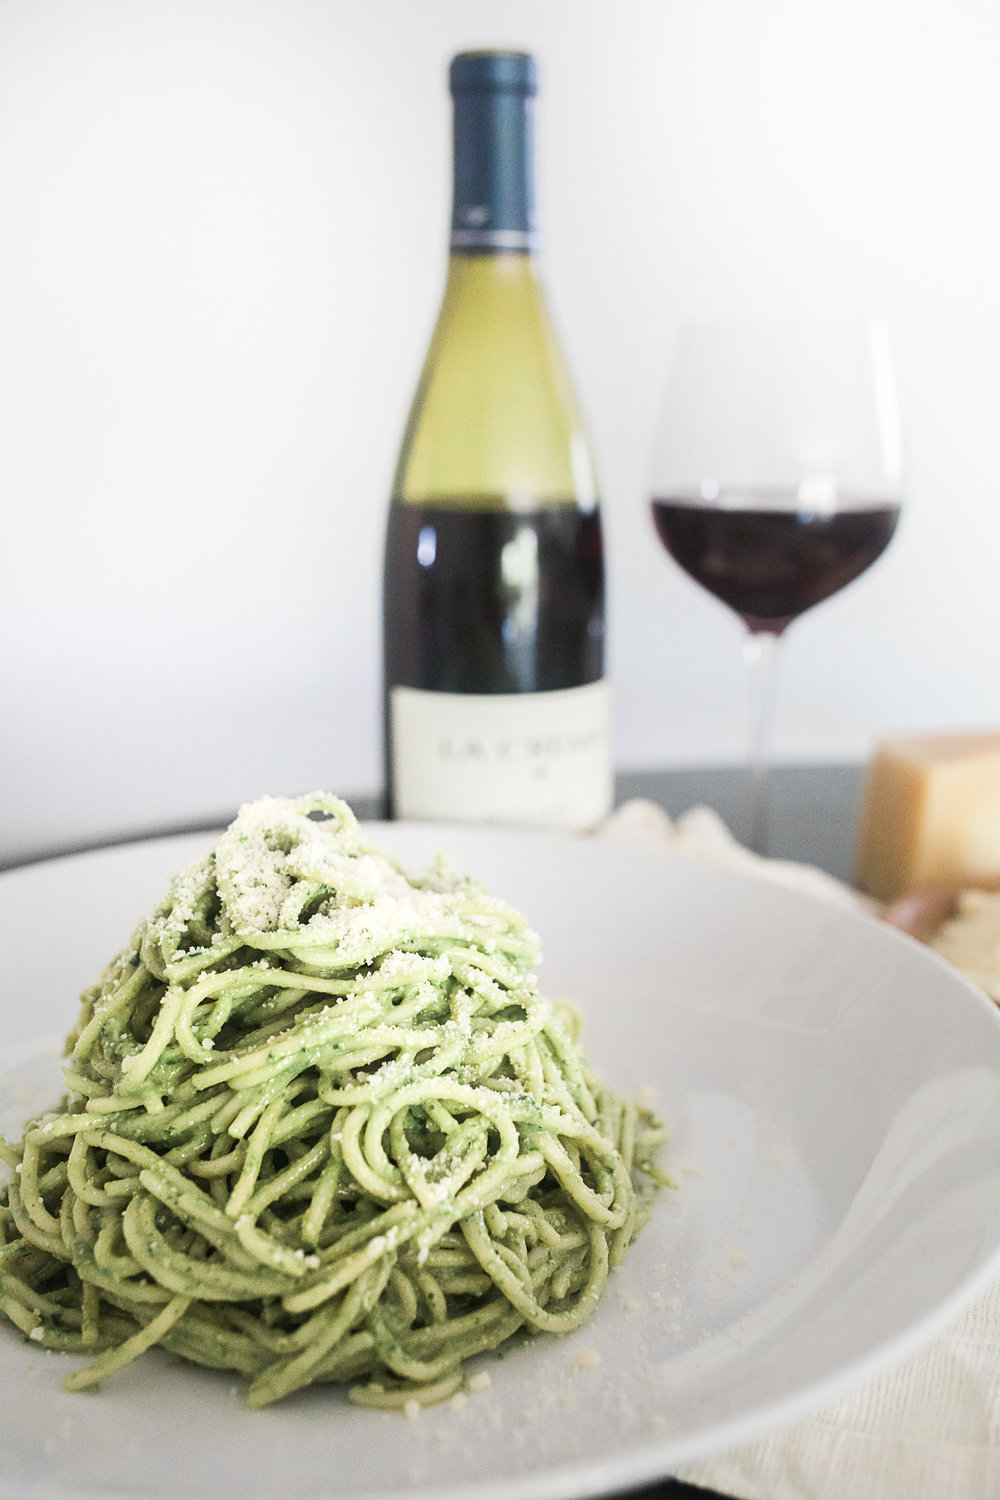 Pasta with Pesto | Freckled Italian